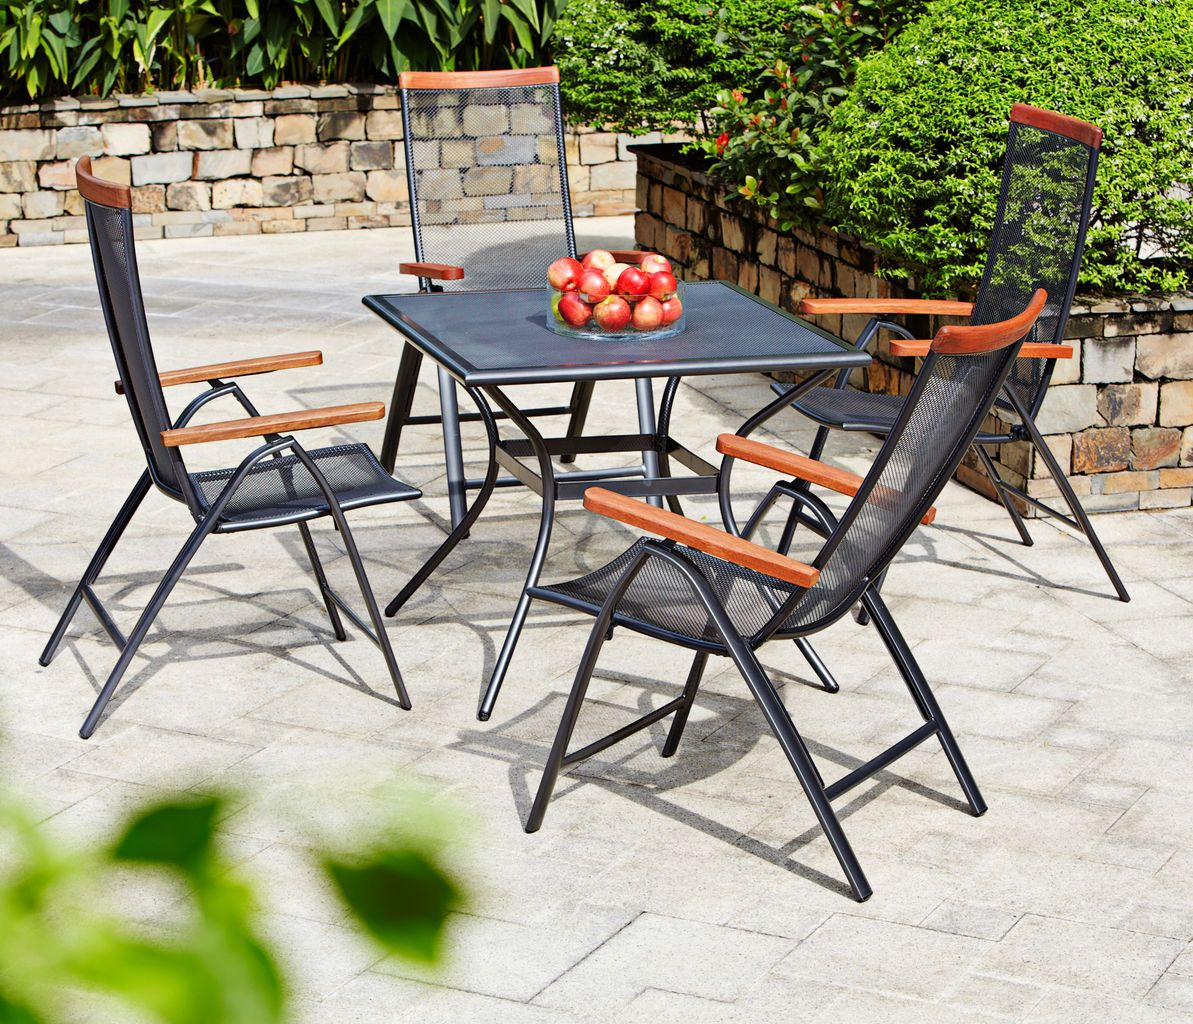 All your garden furniture needs at jysk with beautiful garden dining sets